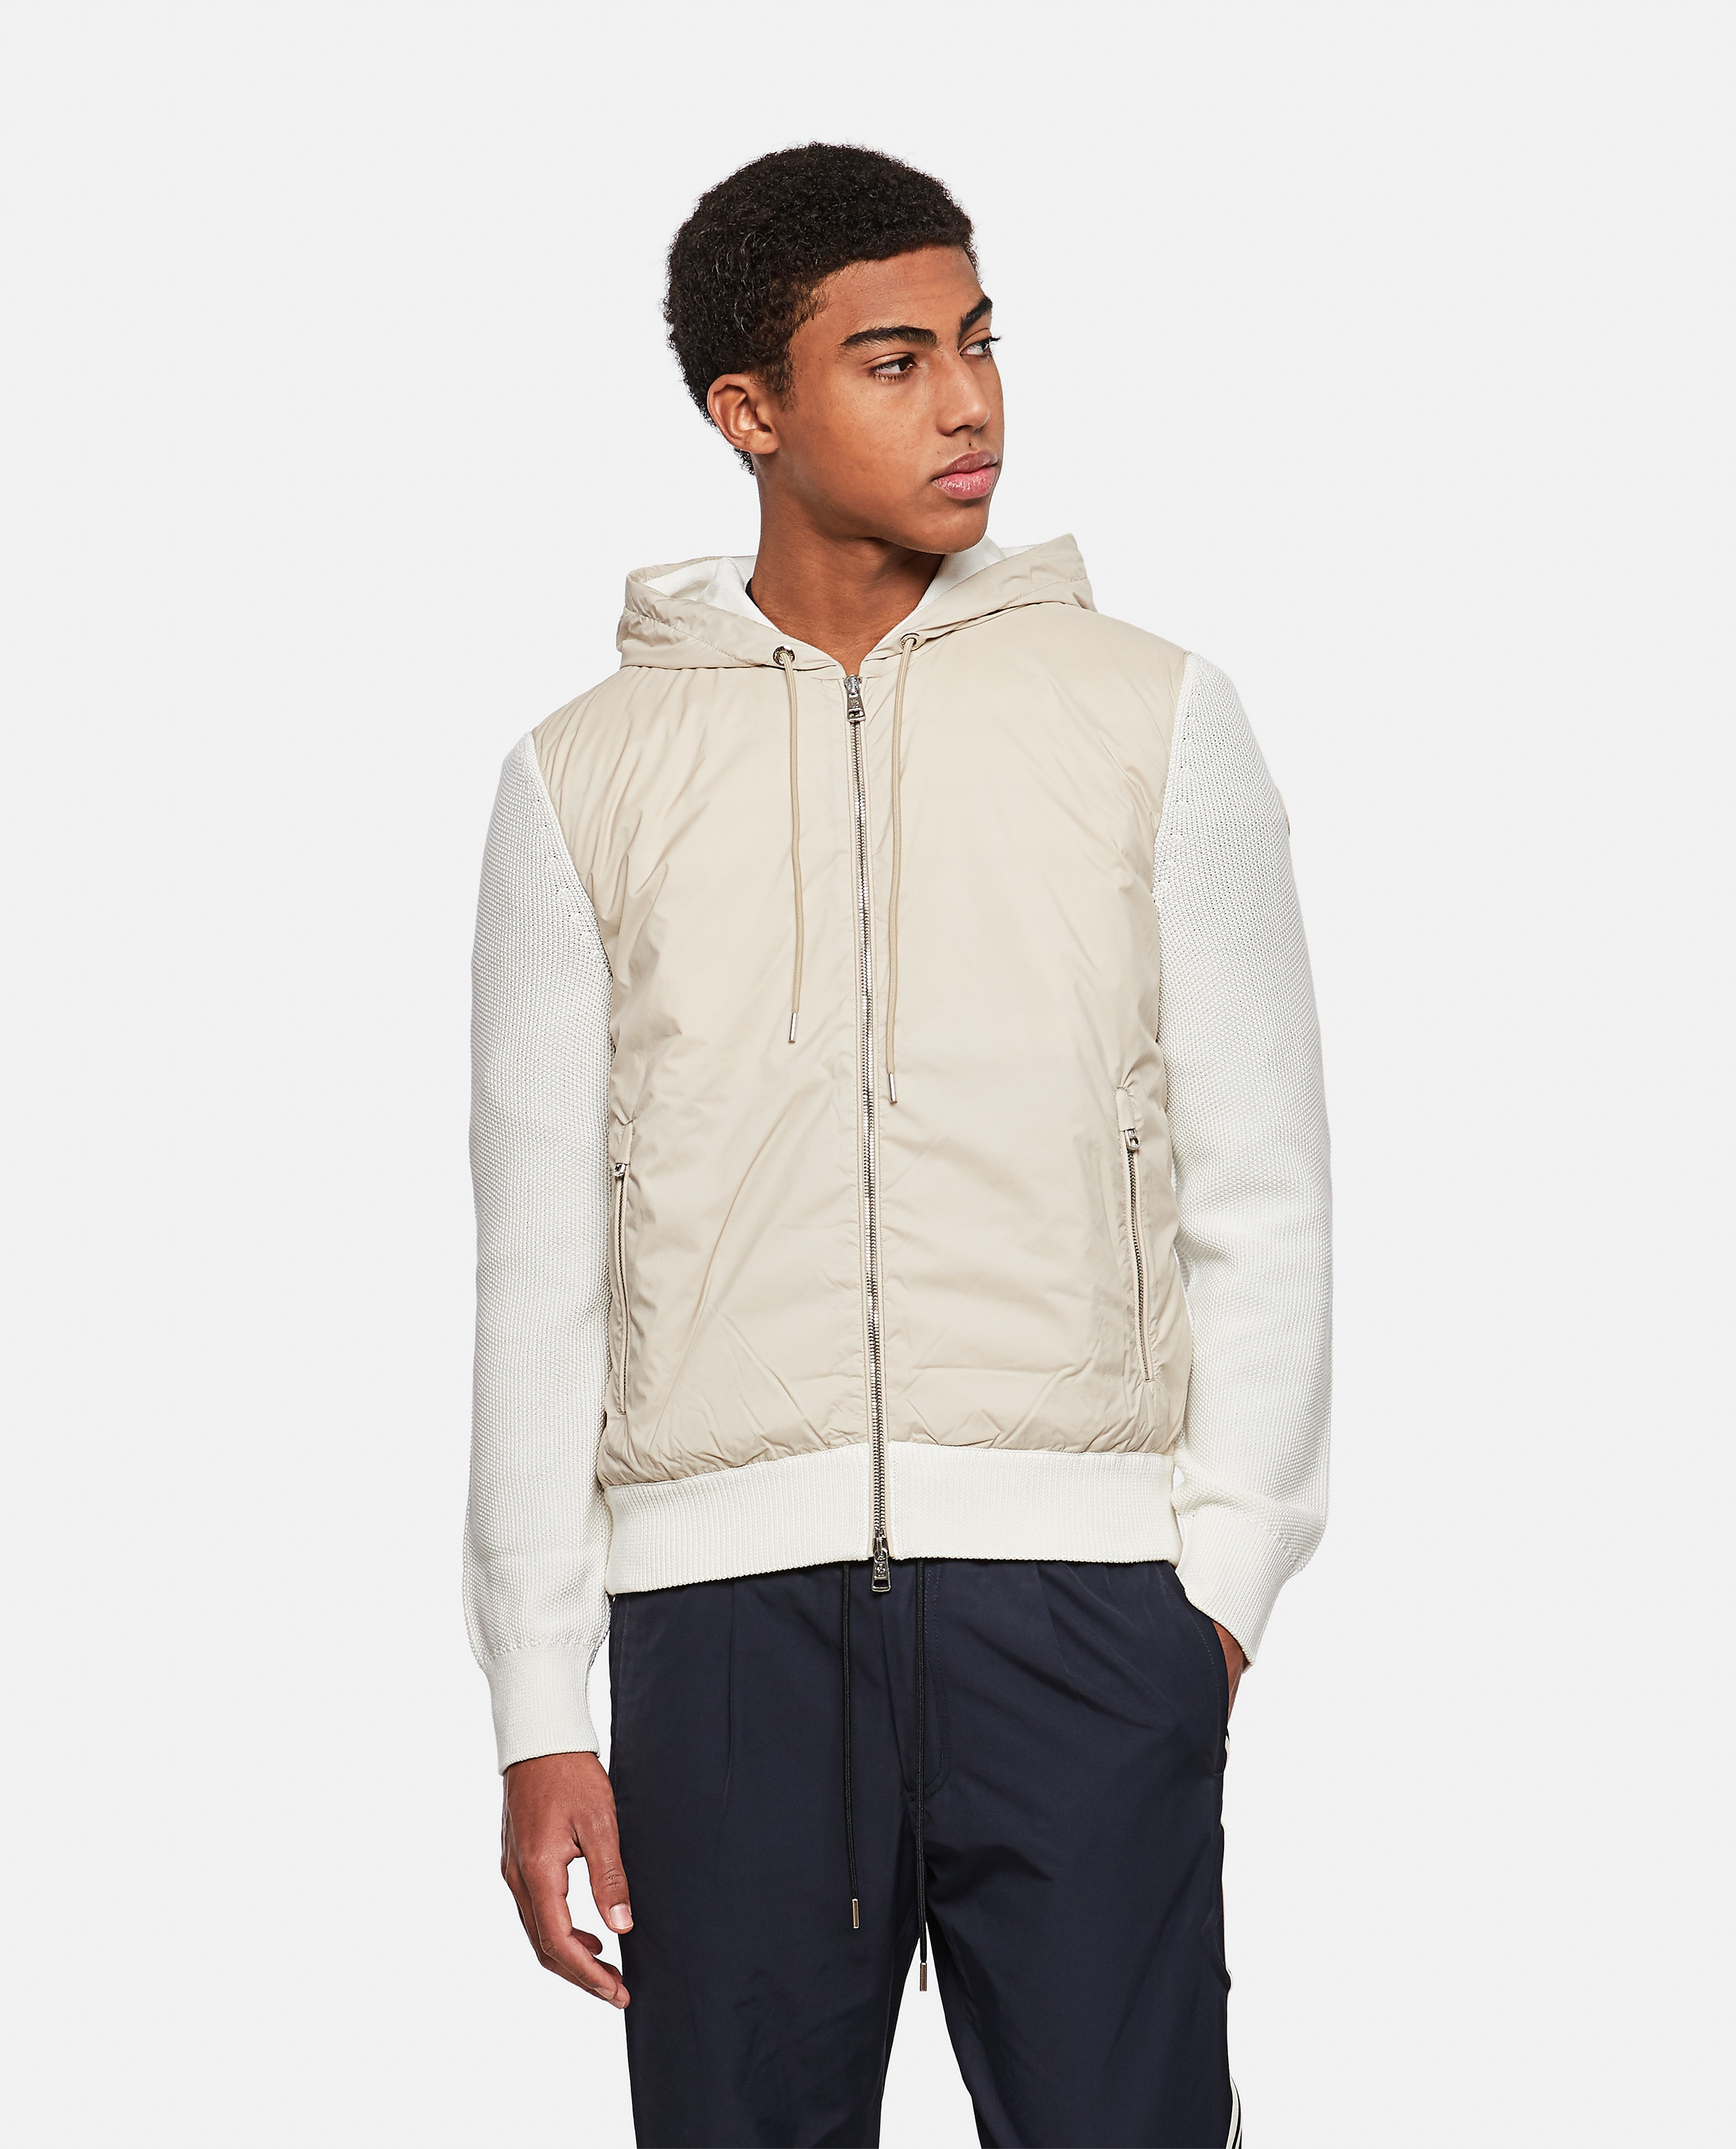 Cardigan with padded detail Men Moncler 000315400046219 1